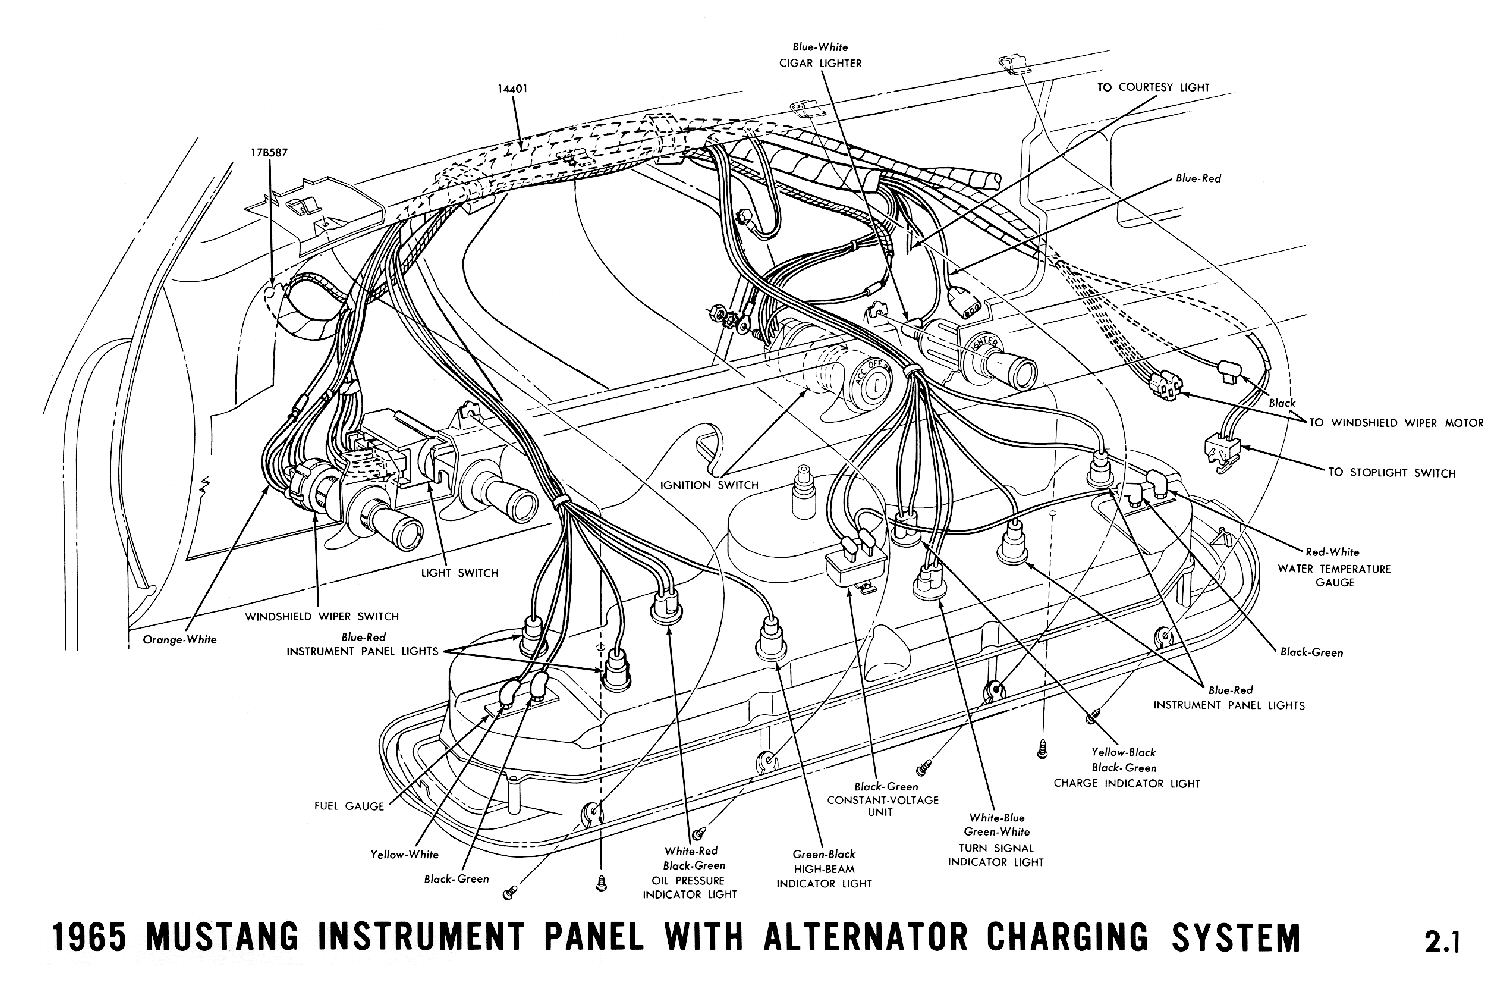 66 Mustang Under Dash Wiring Harness | Wiring Diagram on